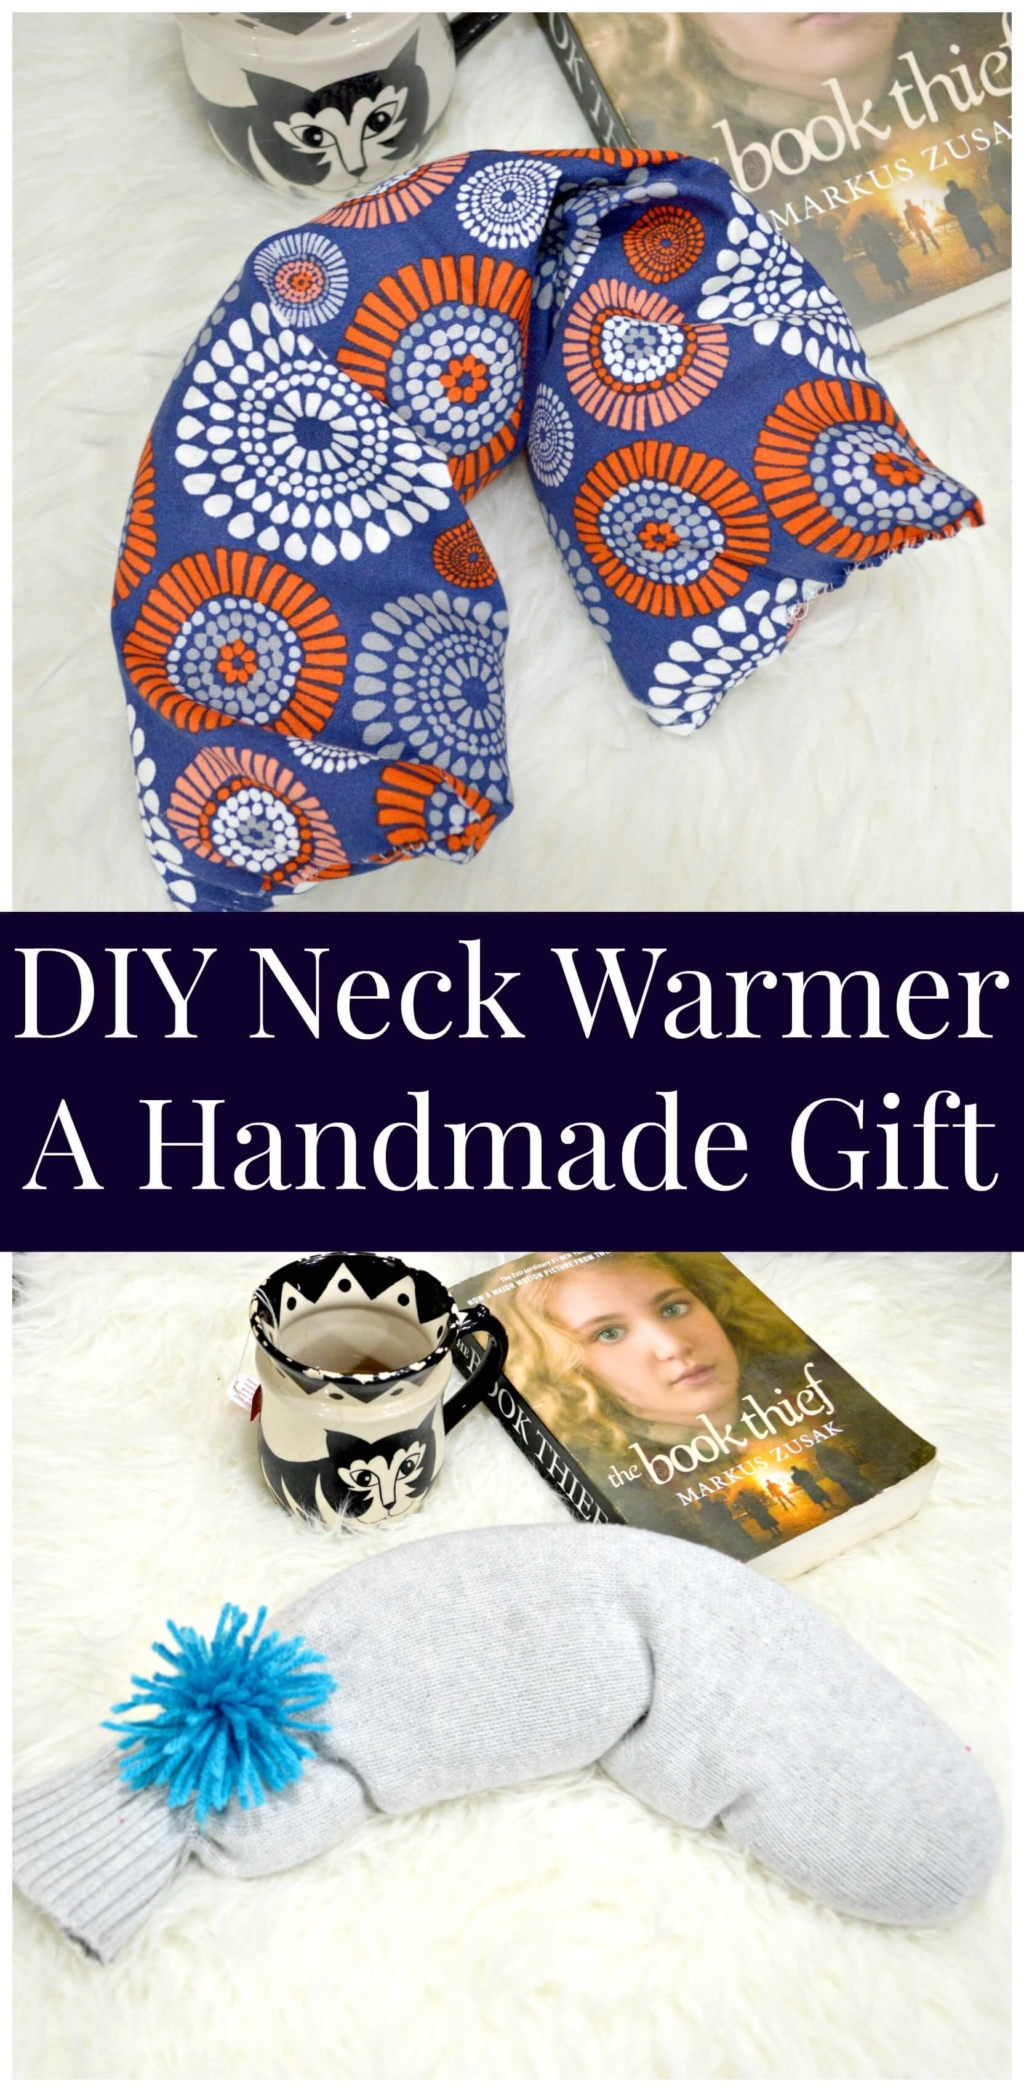 DIY Neck Warmer - A Handmade Gift